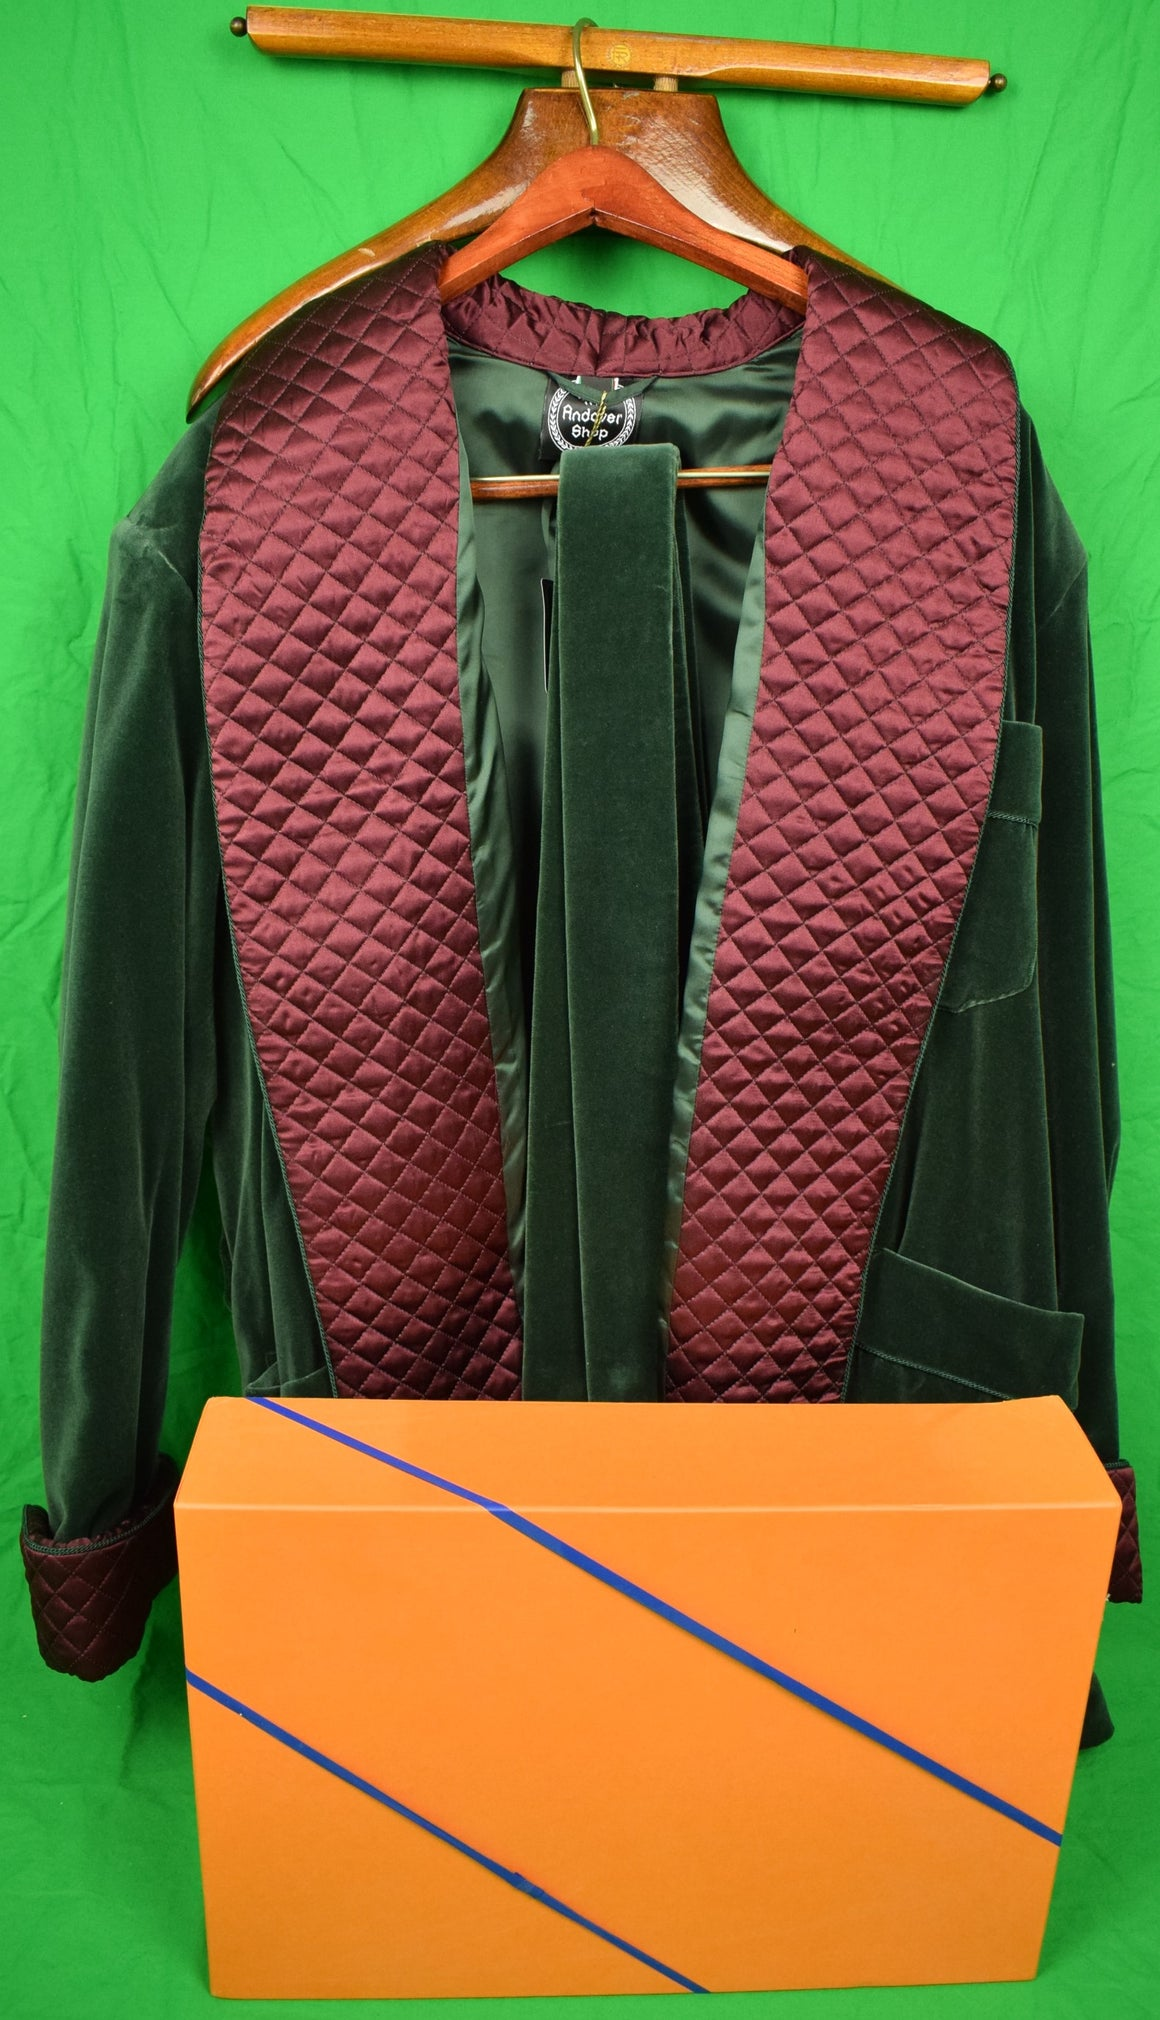 The Andover Shop Billiard Green Velvet Smoking Jacket w Burg Trapunto Shawl Collar Sz: XL